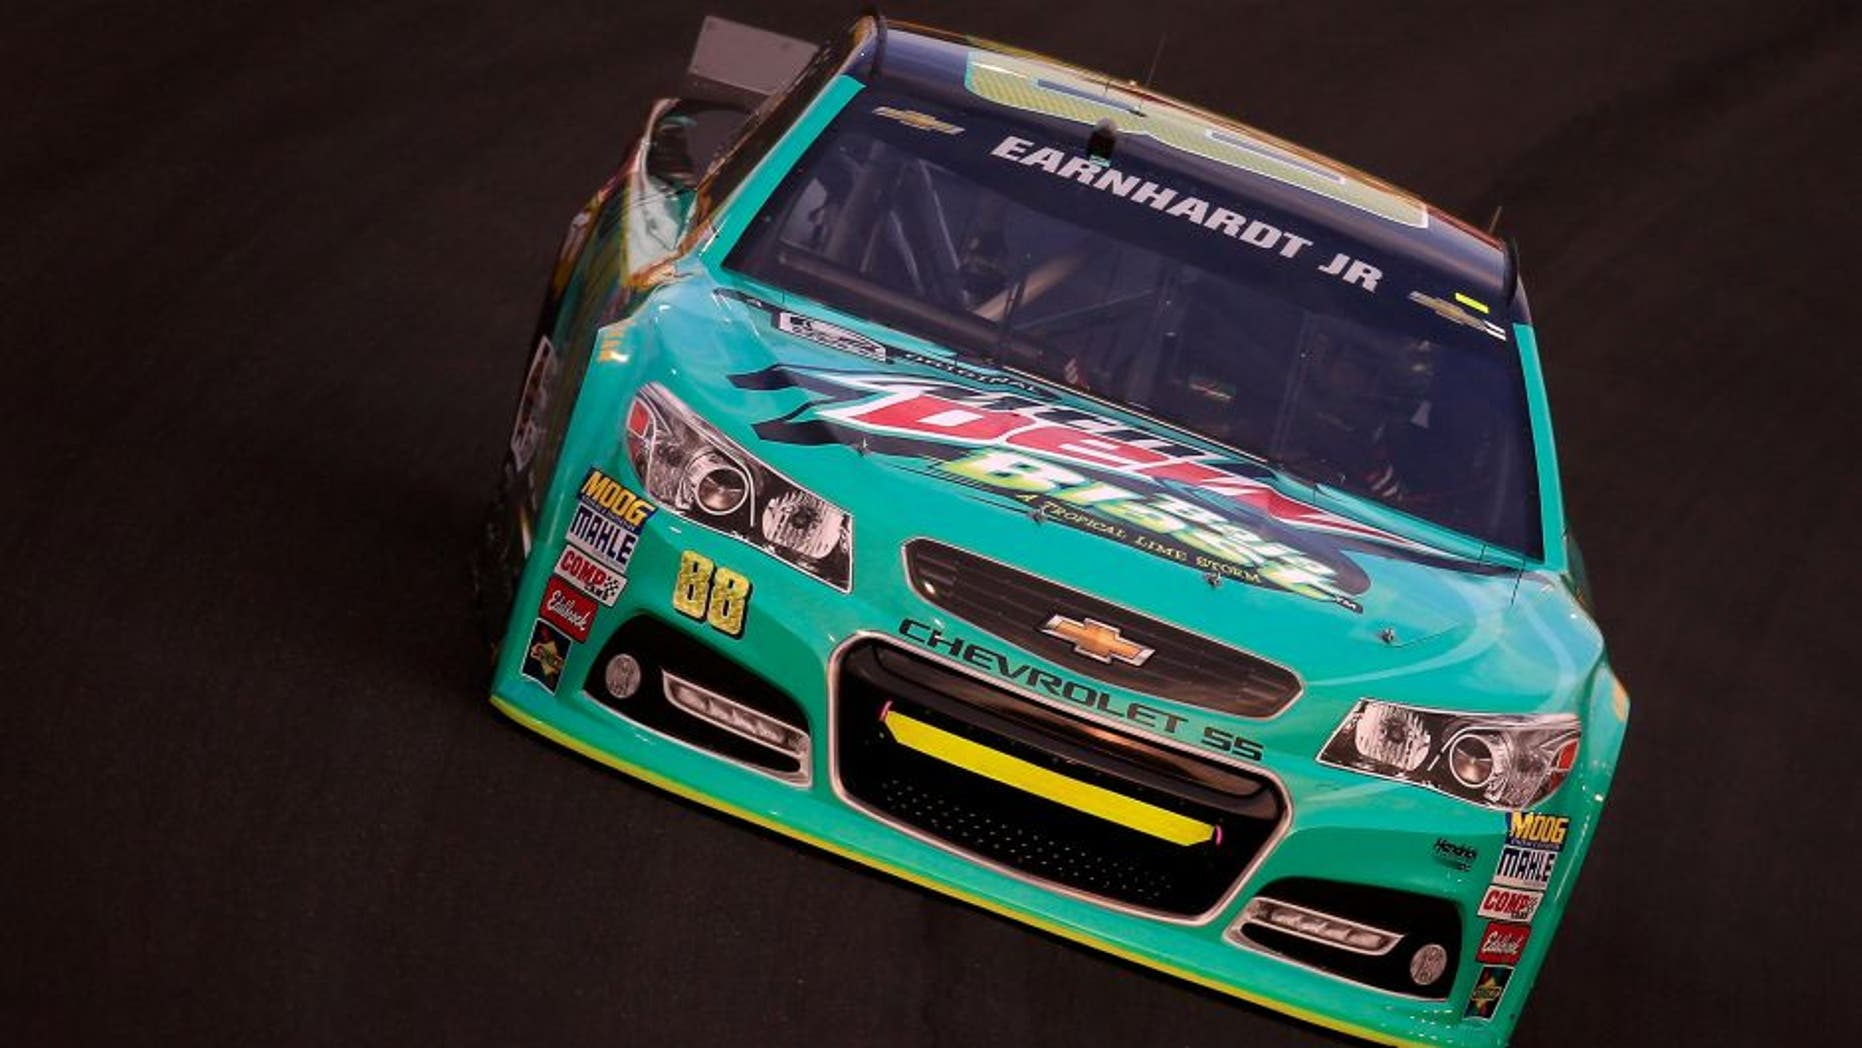 CHARLOTTE, NC - MAY 16: Dale Earnhardt Jr. drives the #88 Mountain Dew Baja Blast Chevrolet during qualifying for the NASCAR Sprint Cup Series Sprint All-Star Race at Charlotte Motor Speedway on May 16, 2015 in Charlotte, North Carolina. (Photo by Chris Trotman/Getty Images)